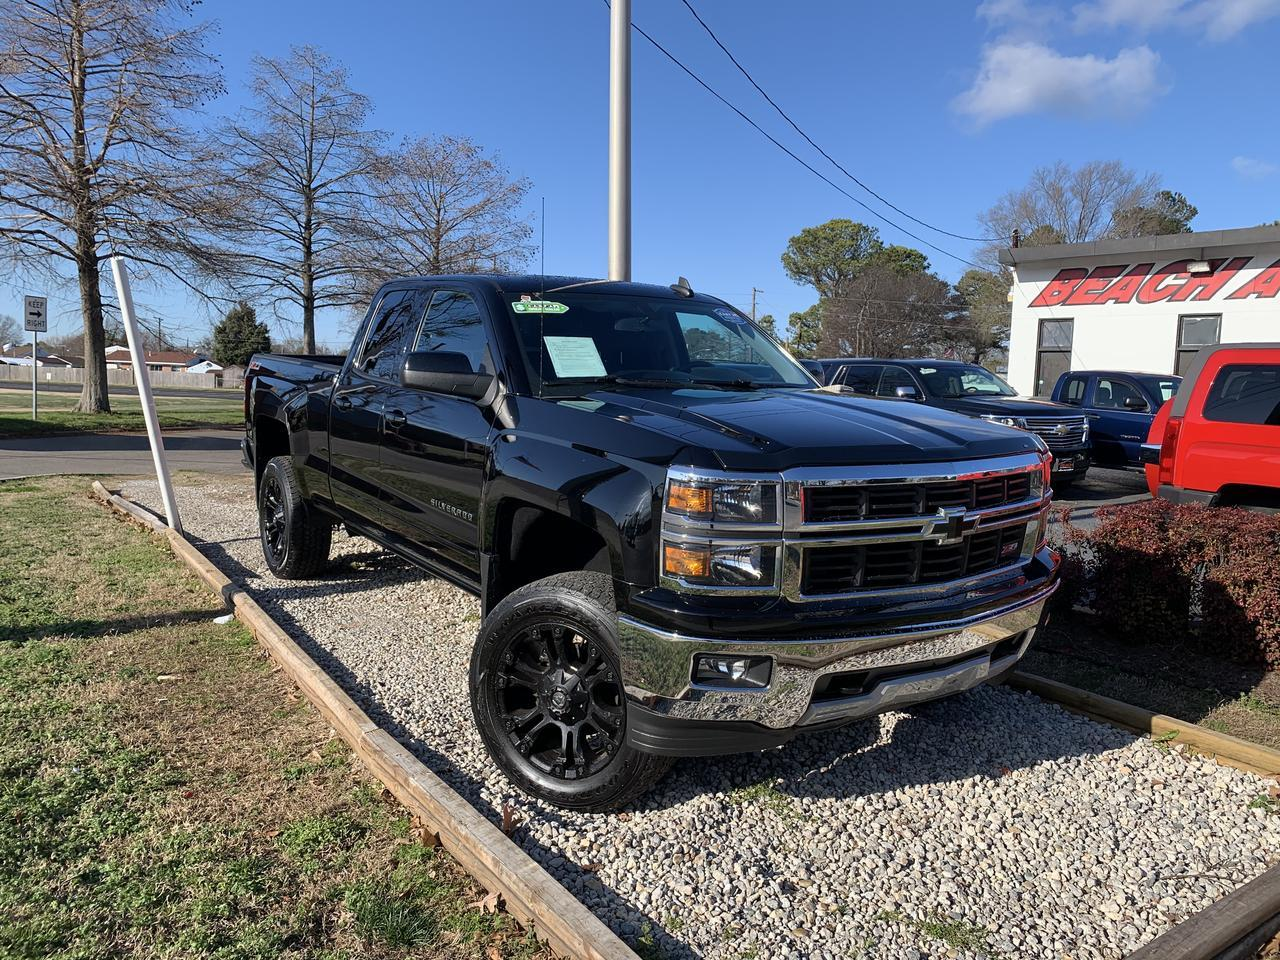 2015 CHEVROLET SILVERADO 1500 LT Z-71 OFF ROAD DOUBLE CAB 4X4, WARRANTY, BLUETOOTH, AUX/USB PORT, CLEAN CARFAX! Norfolk VA